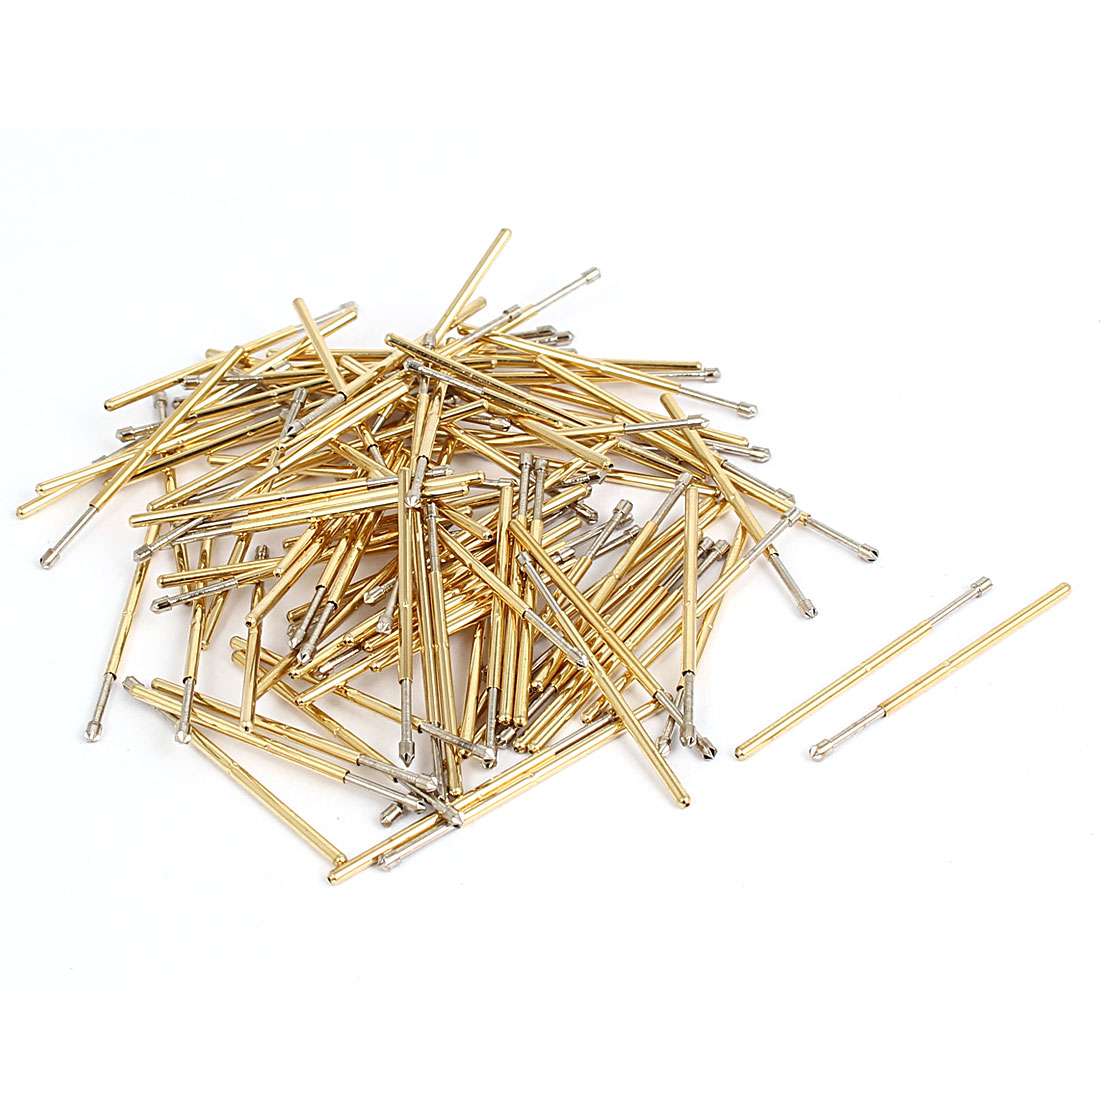 P100LM 33mm Length 4-Point Crown Tip Spring Loaded Contact Test Probe Pin 100Pcs